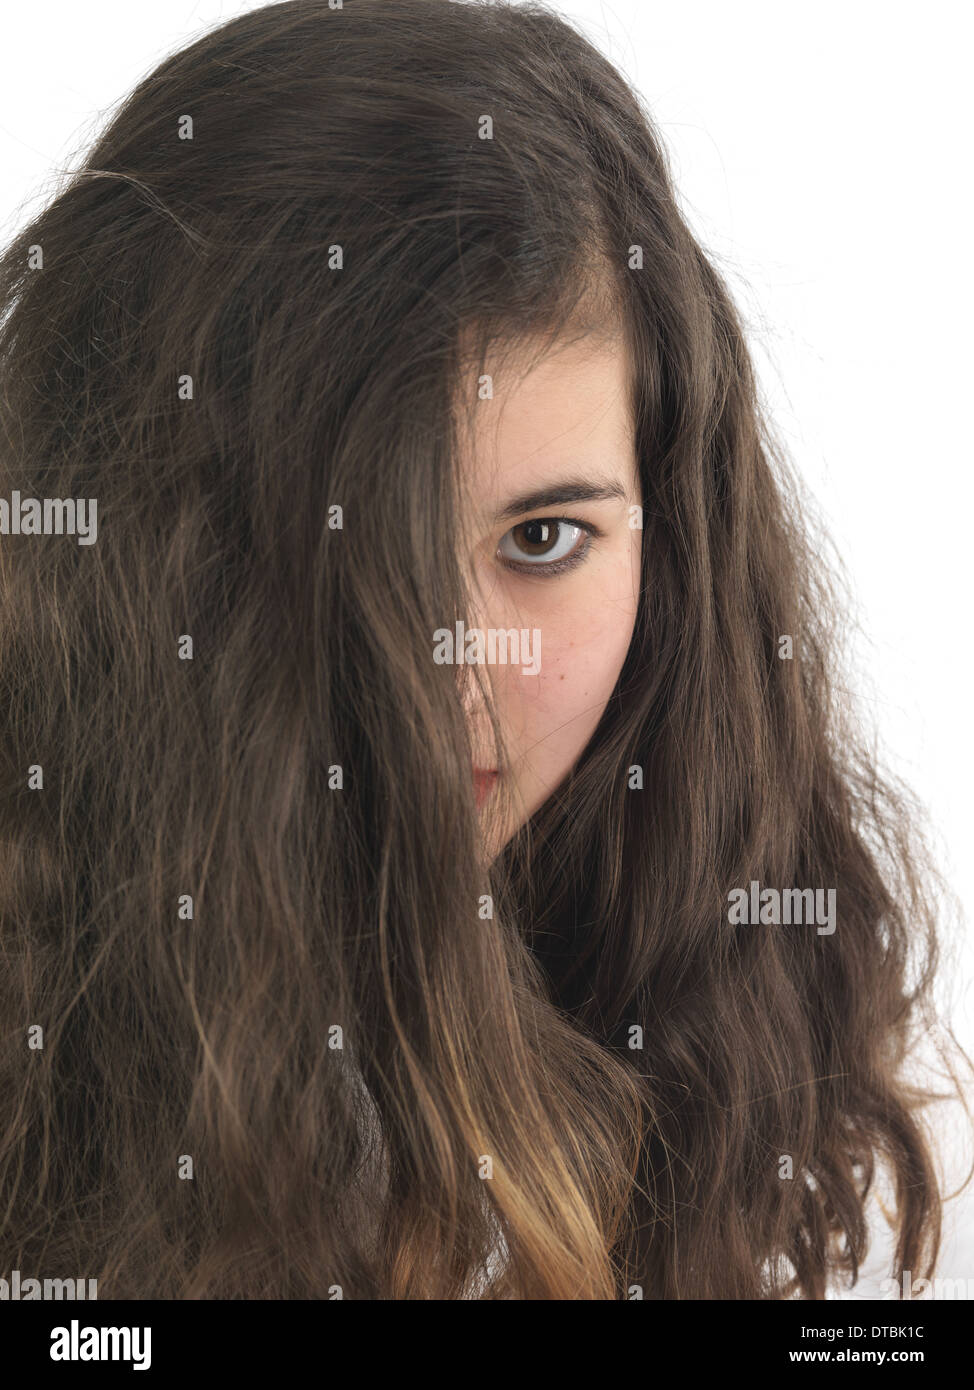 15 year old girl posing in front of camera - Stock Image